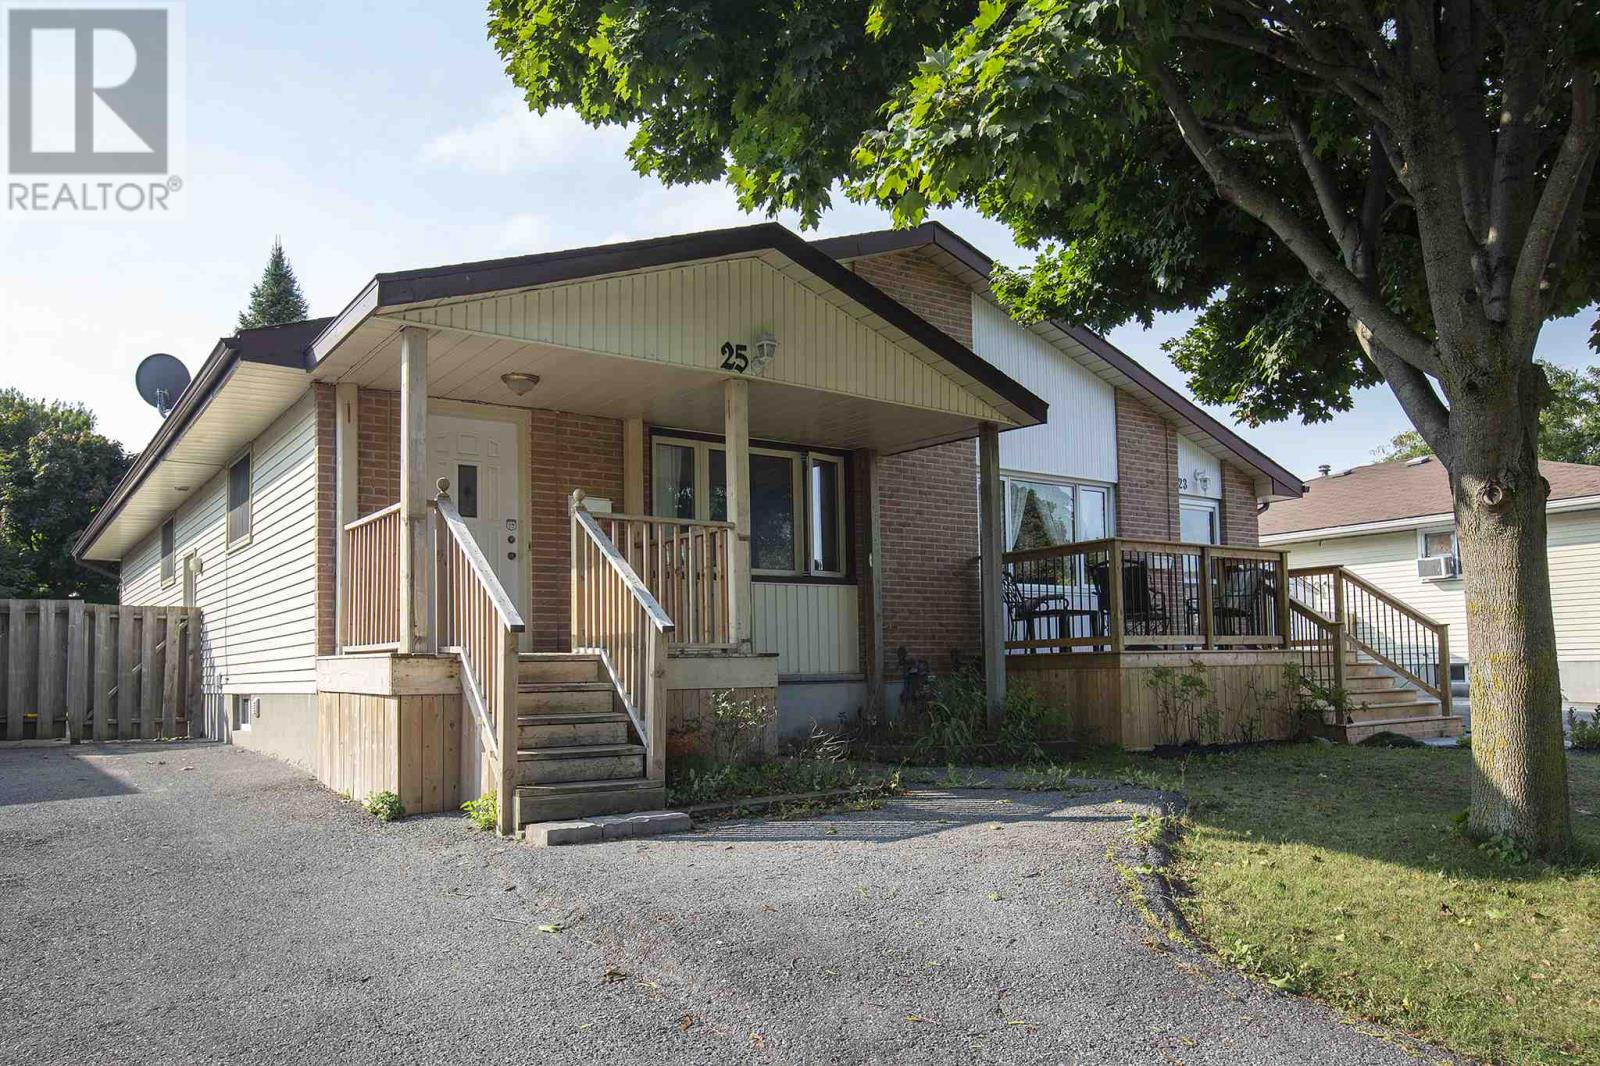 Removed: 25 Wycliffe Crescent, Kingston, ON - Removed on 2018-10-26 05:42:18